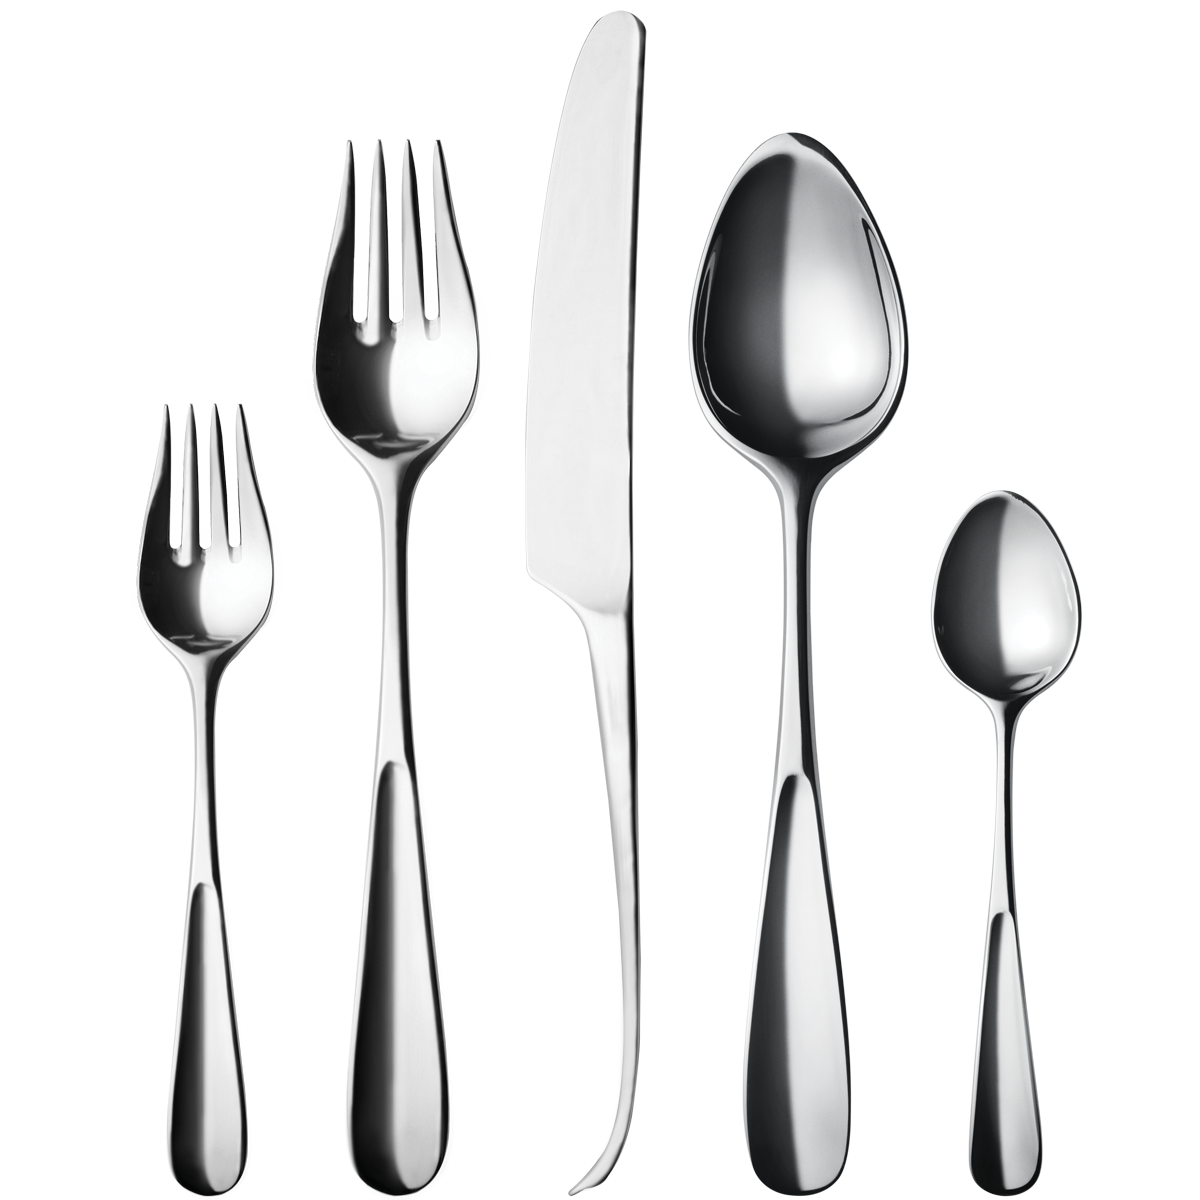 Spoon and fork png. Images transparent free download